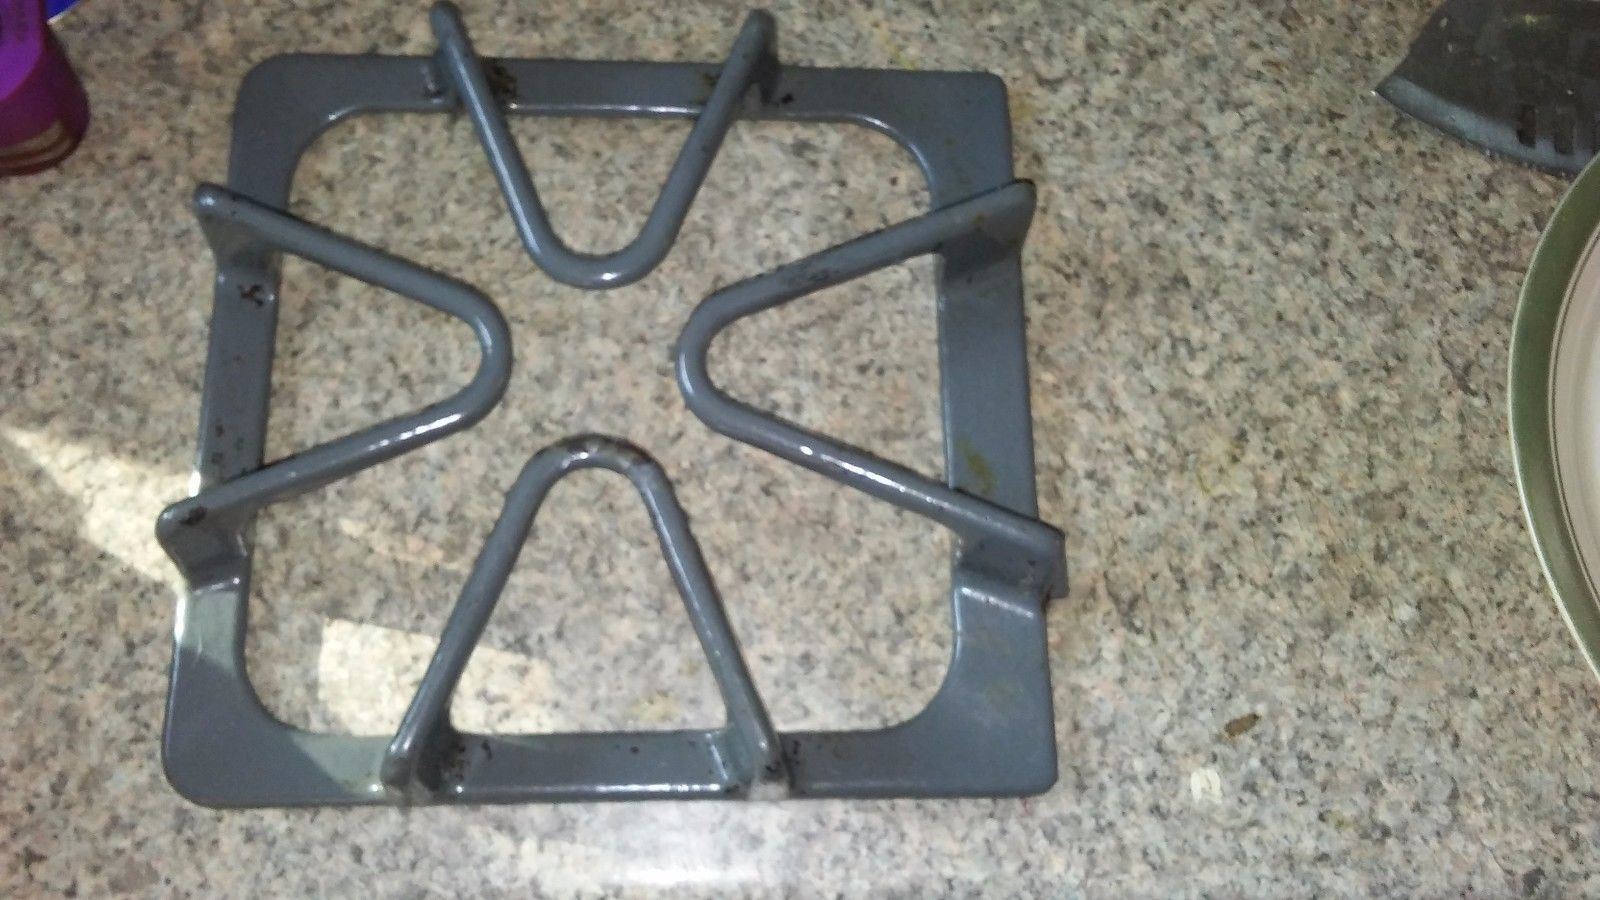 kitchen aid accessories googleapplianceparts at bonanza home amp garden parts 2166